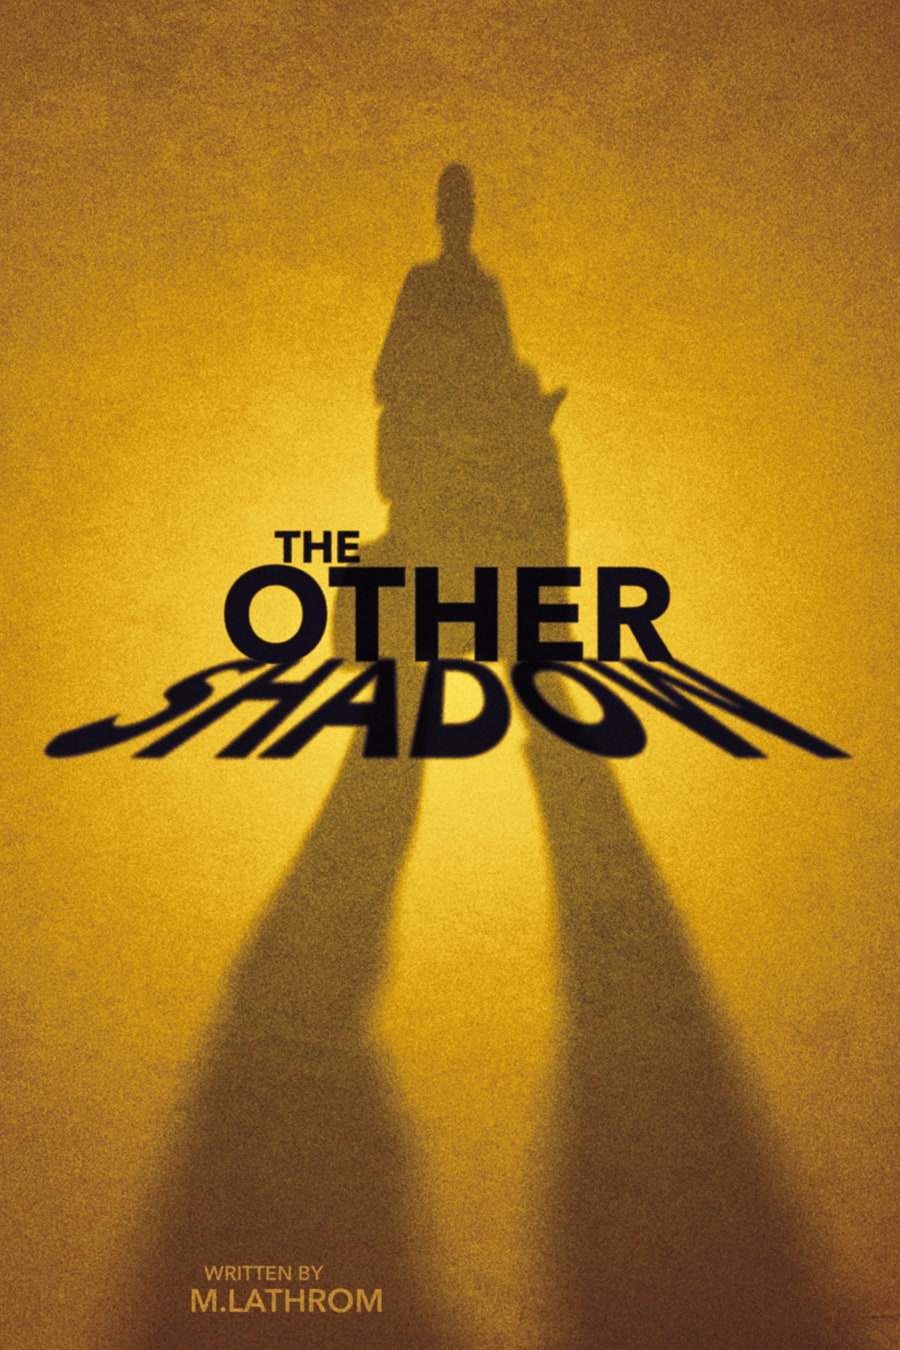 The Other Shadow Poster